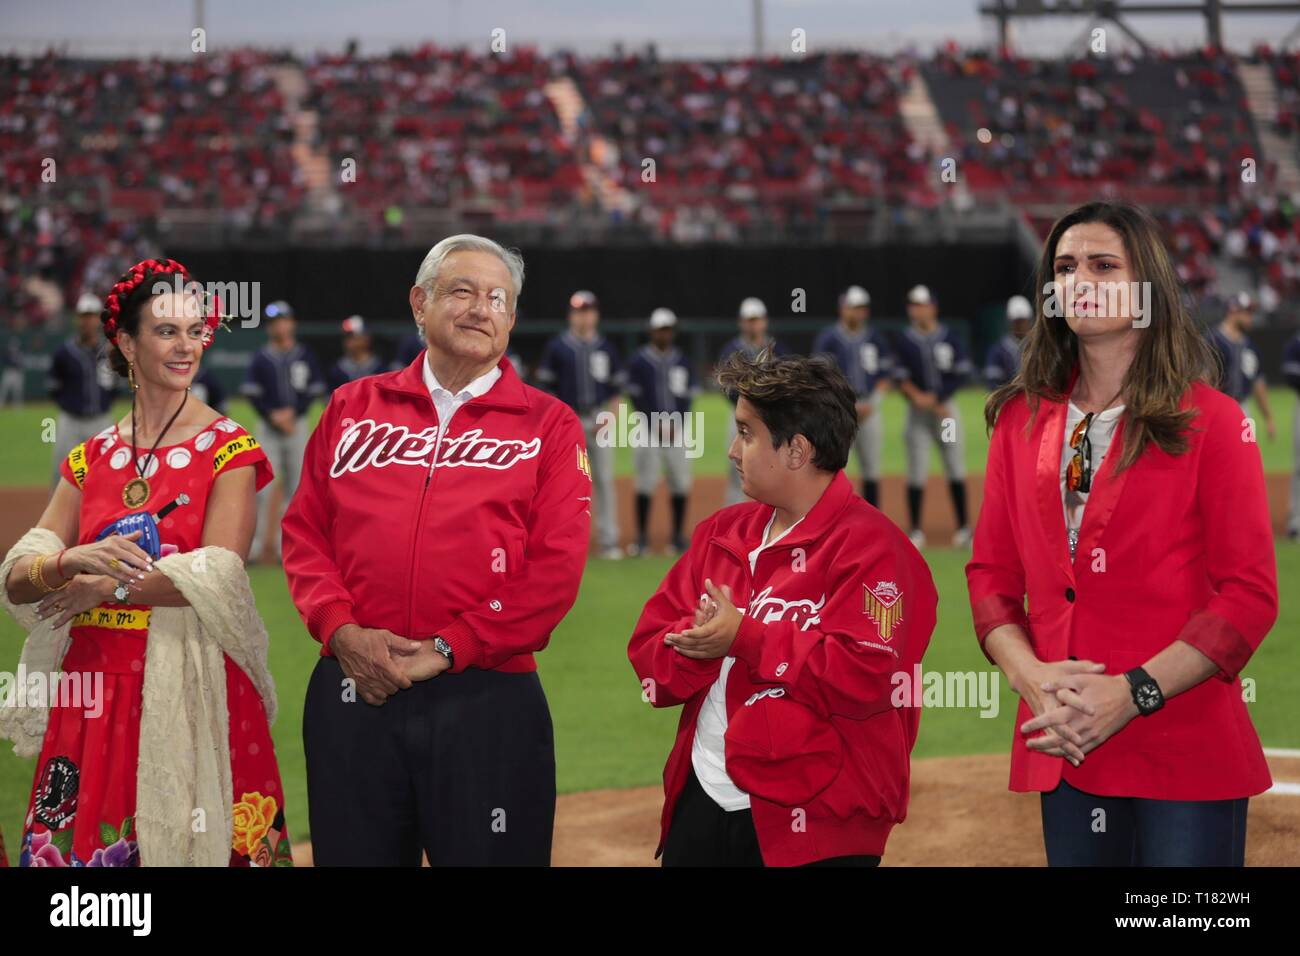 Mexico City, Mexico. 23rd Mar, 2019. Mexican President Andres Manuel Lopez Obrador, 2nd right, during the opening ceremony at the Alfredo Harp Helu Baseball Stadium, home of the Mexico City Red Devils March 23, 2019 in Mexico City, Mexico. Obrador who has enjoyed soaring approval ratings was booed and jeered by the hostile crowd in a rare display of public animosity for the popular president. Credit: Planetpix/Alamy Live News - Stock Image